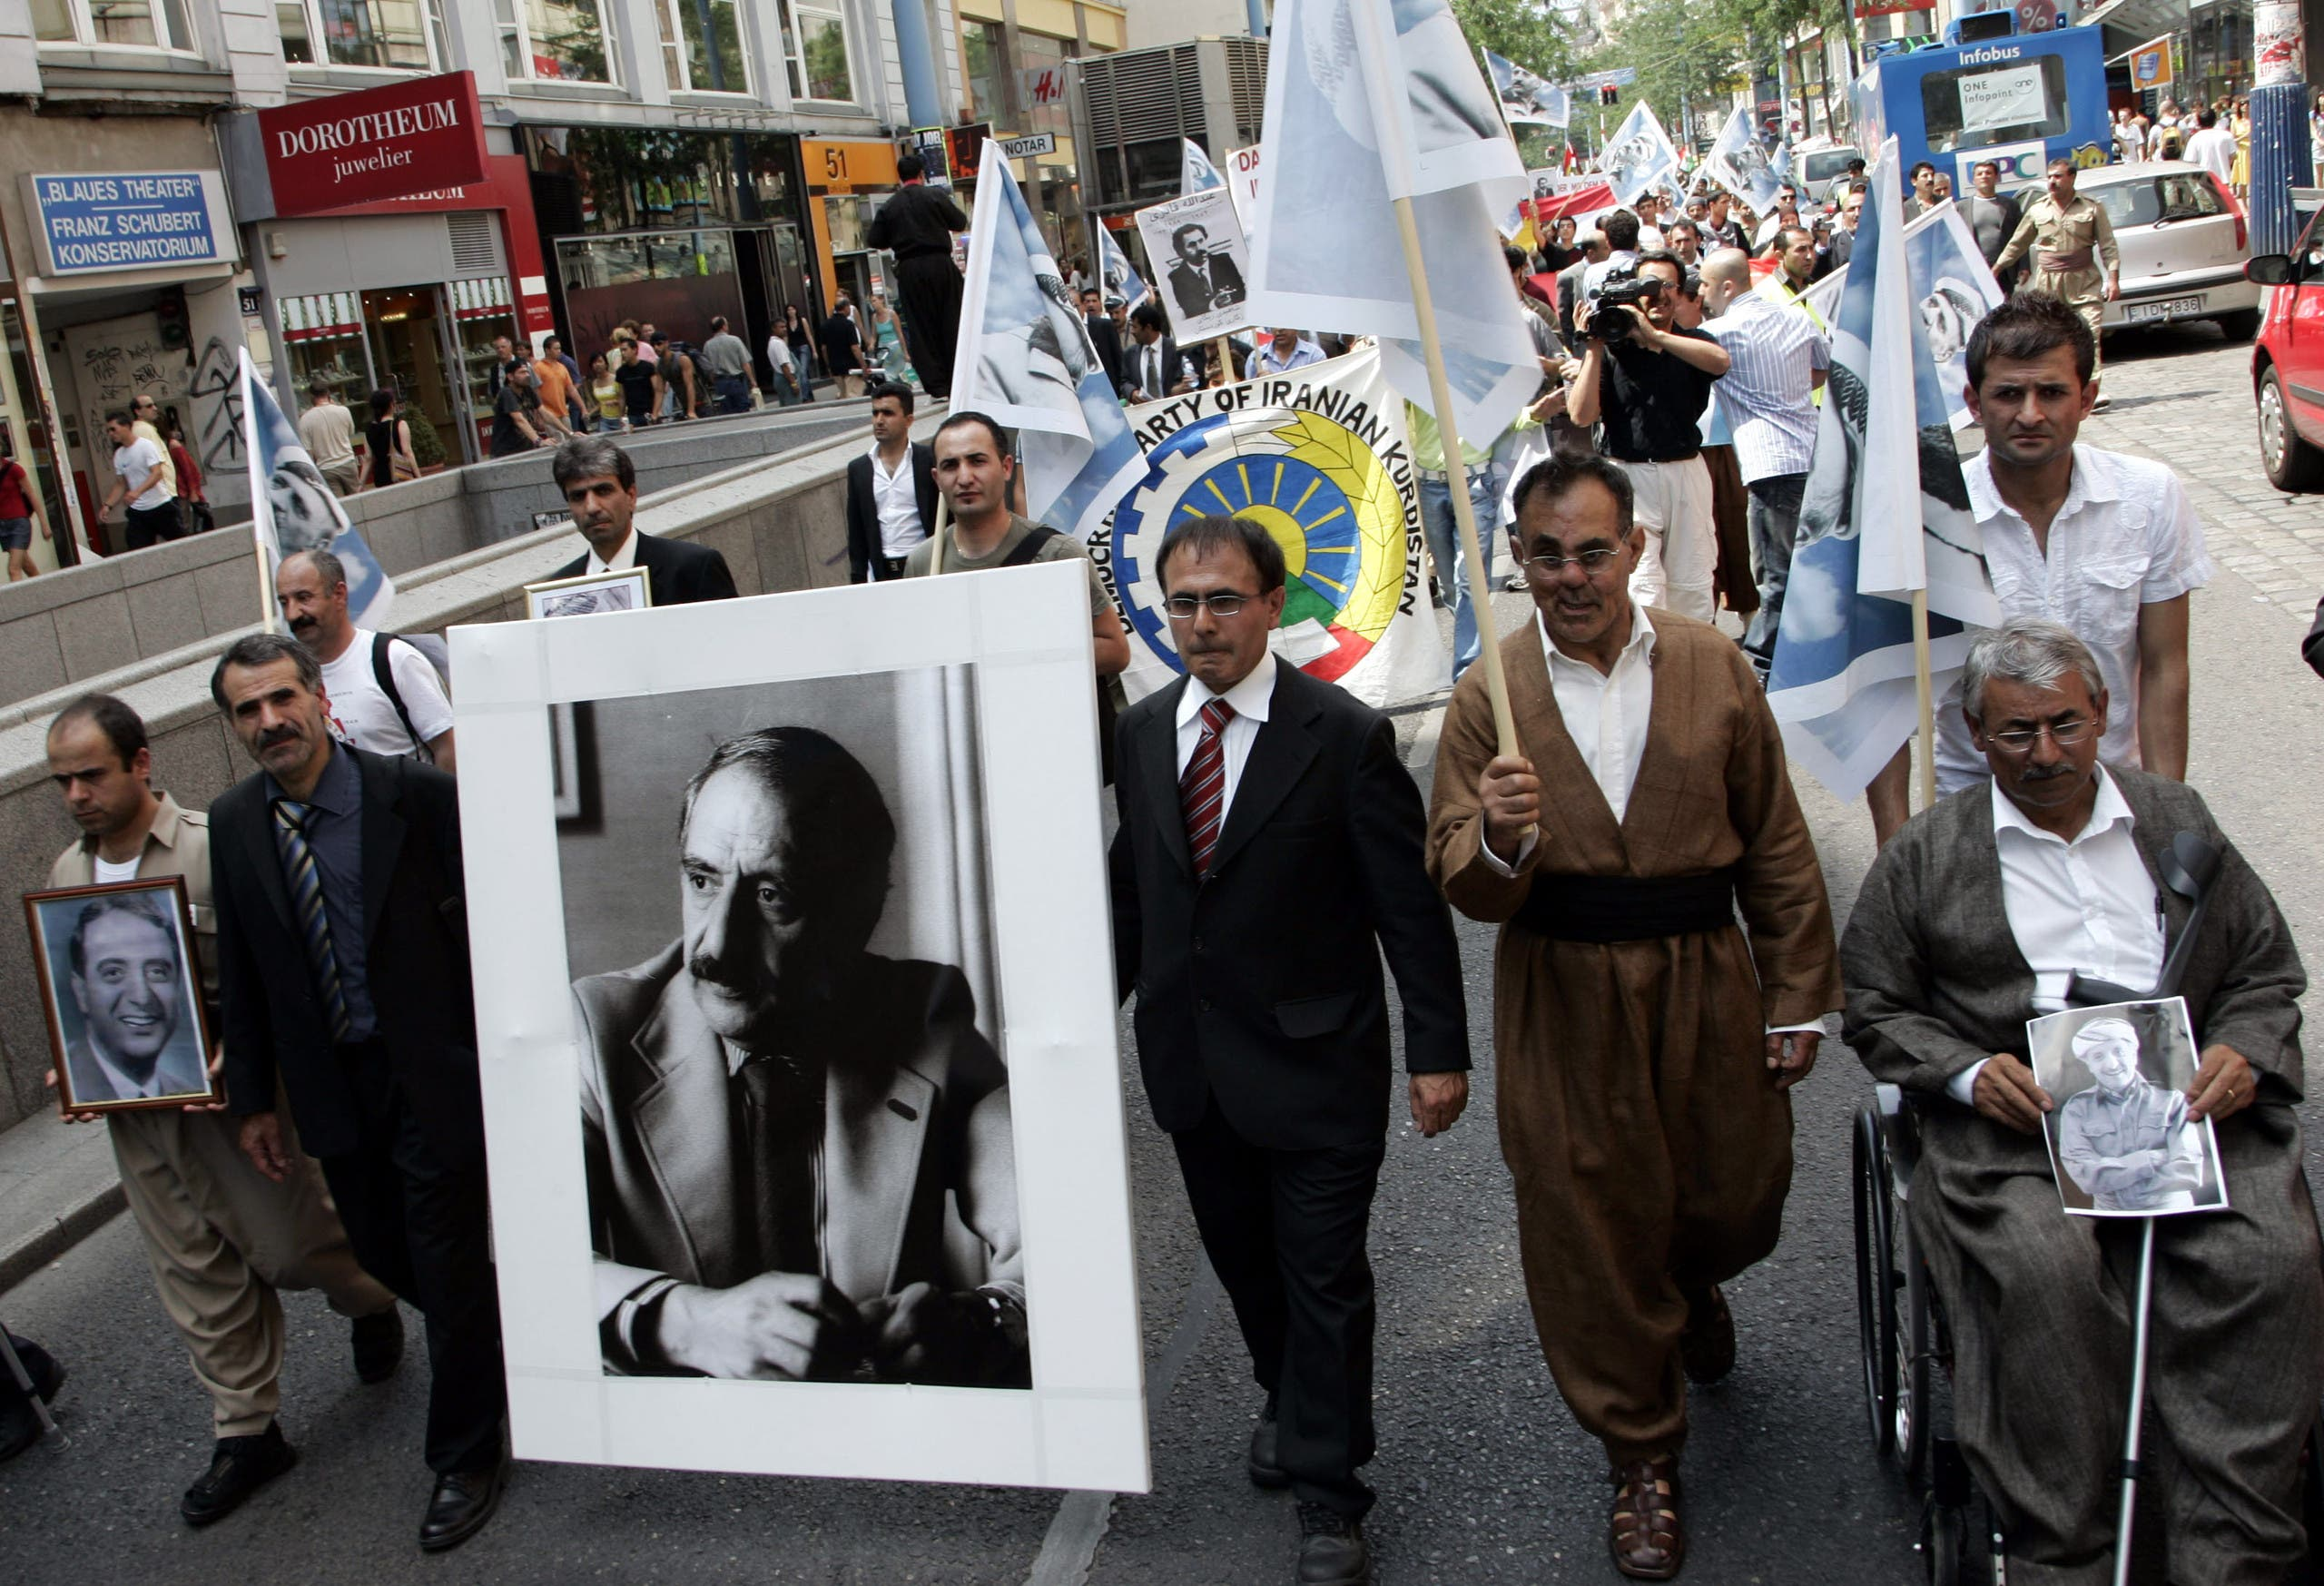 Hundreds of demonstrators take part in a demonstration 17 years ago in Vienna on Thursday, 13 July 2006 in Vienna, on the occasion of the killing of Kurdish Secretary-General Abdul Rahman Ghassemlou of PDKI. (AP)